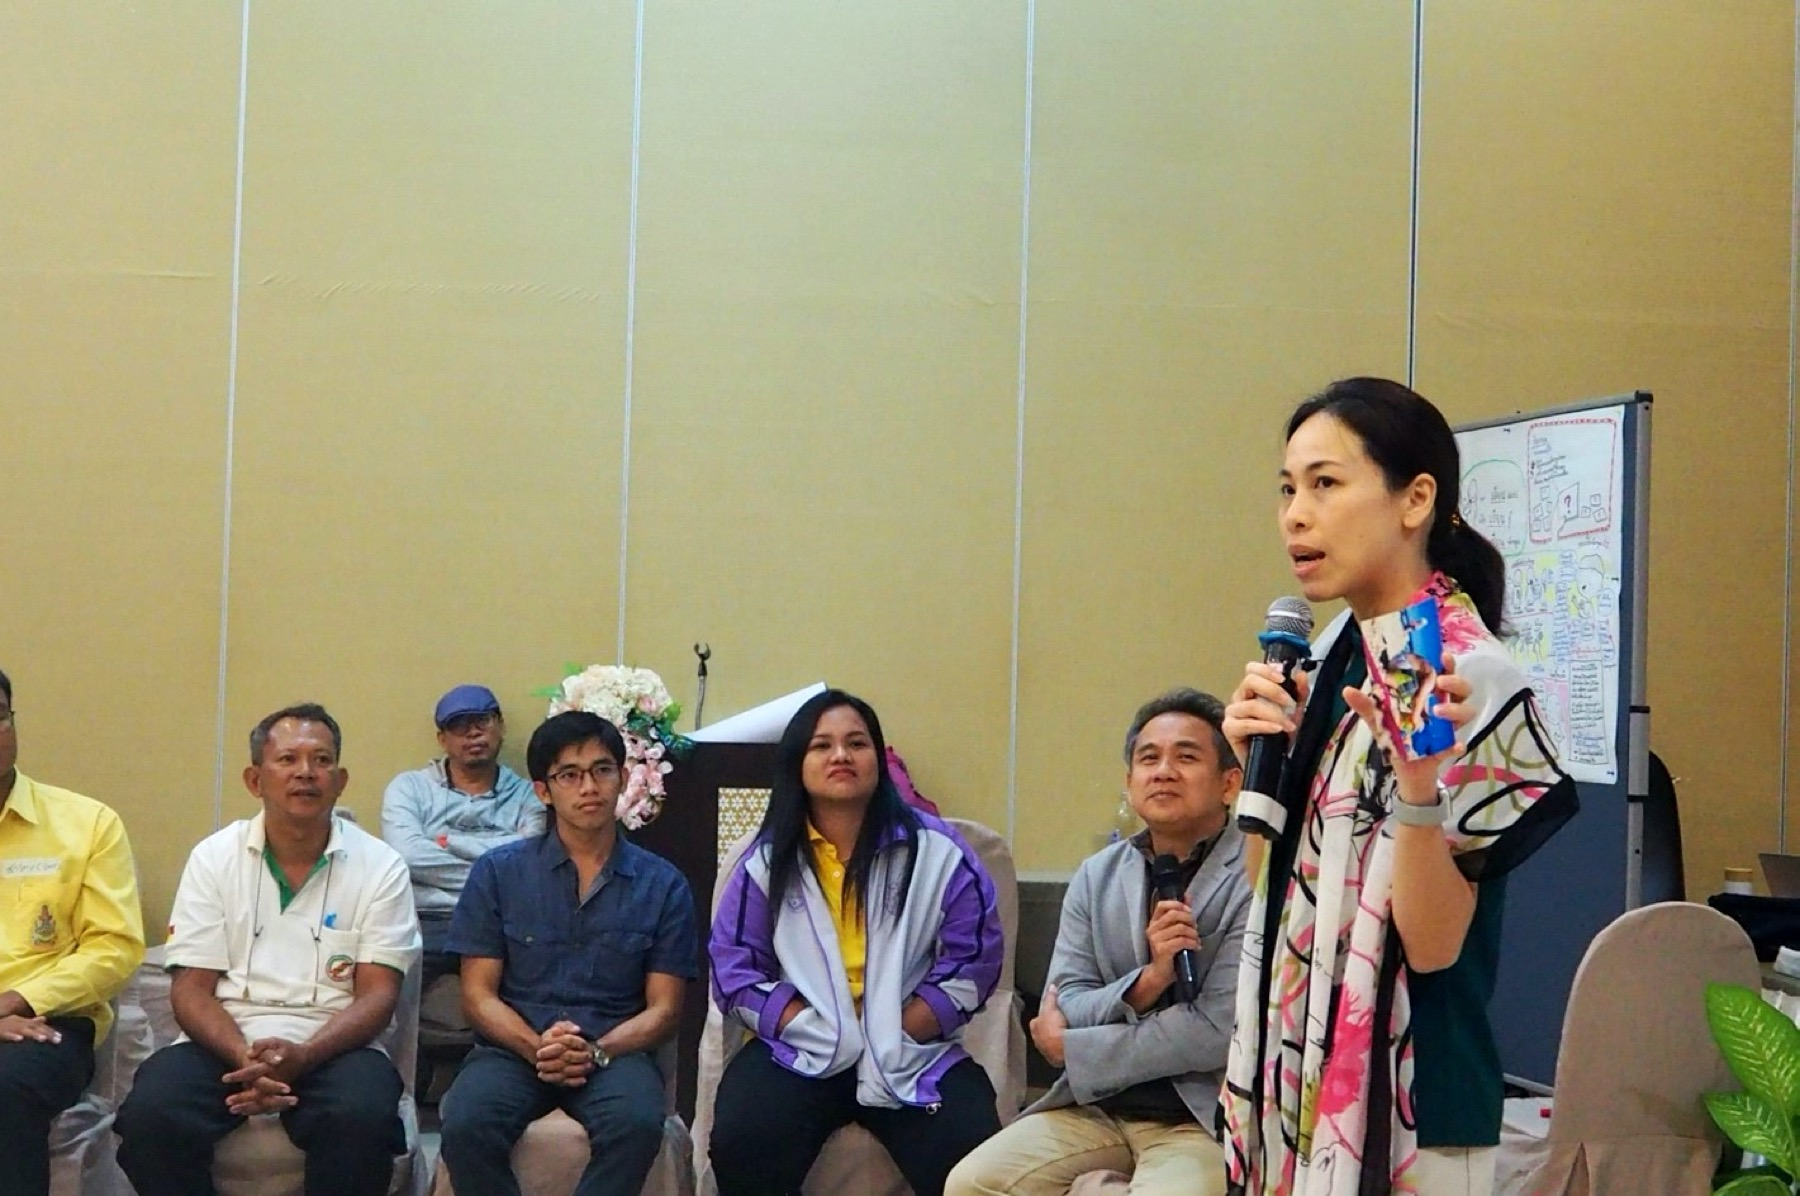 Speakers reflect the feelings towards the training for farmers and agricultural extension staff in Surat Thani Province in July 2019 (Photo credit: GIZ Thailand)